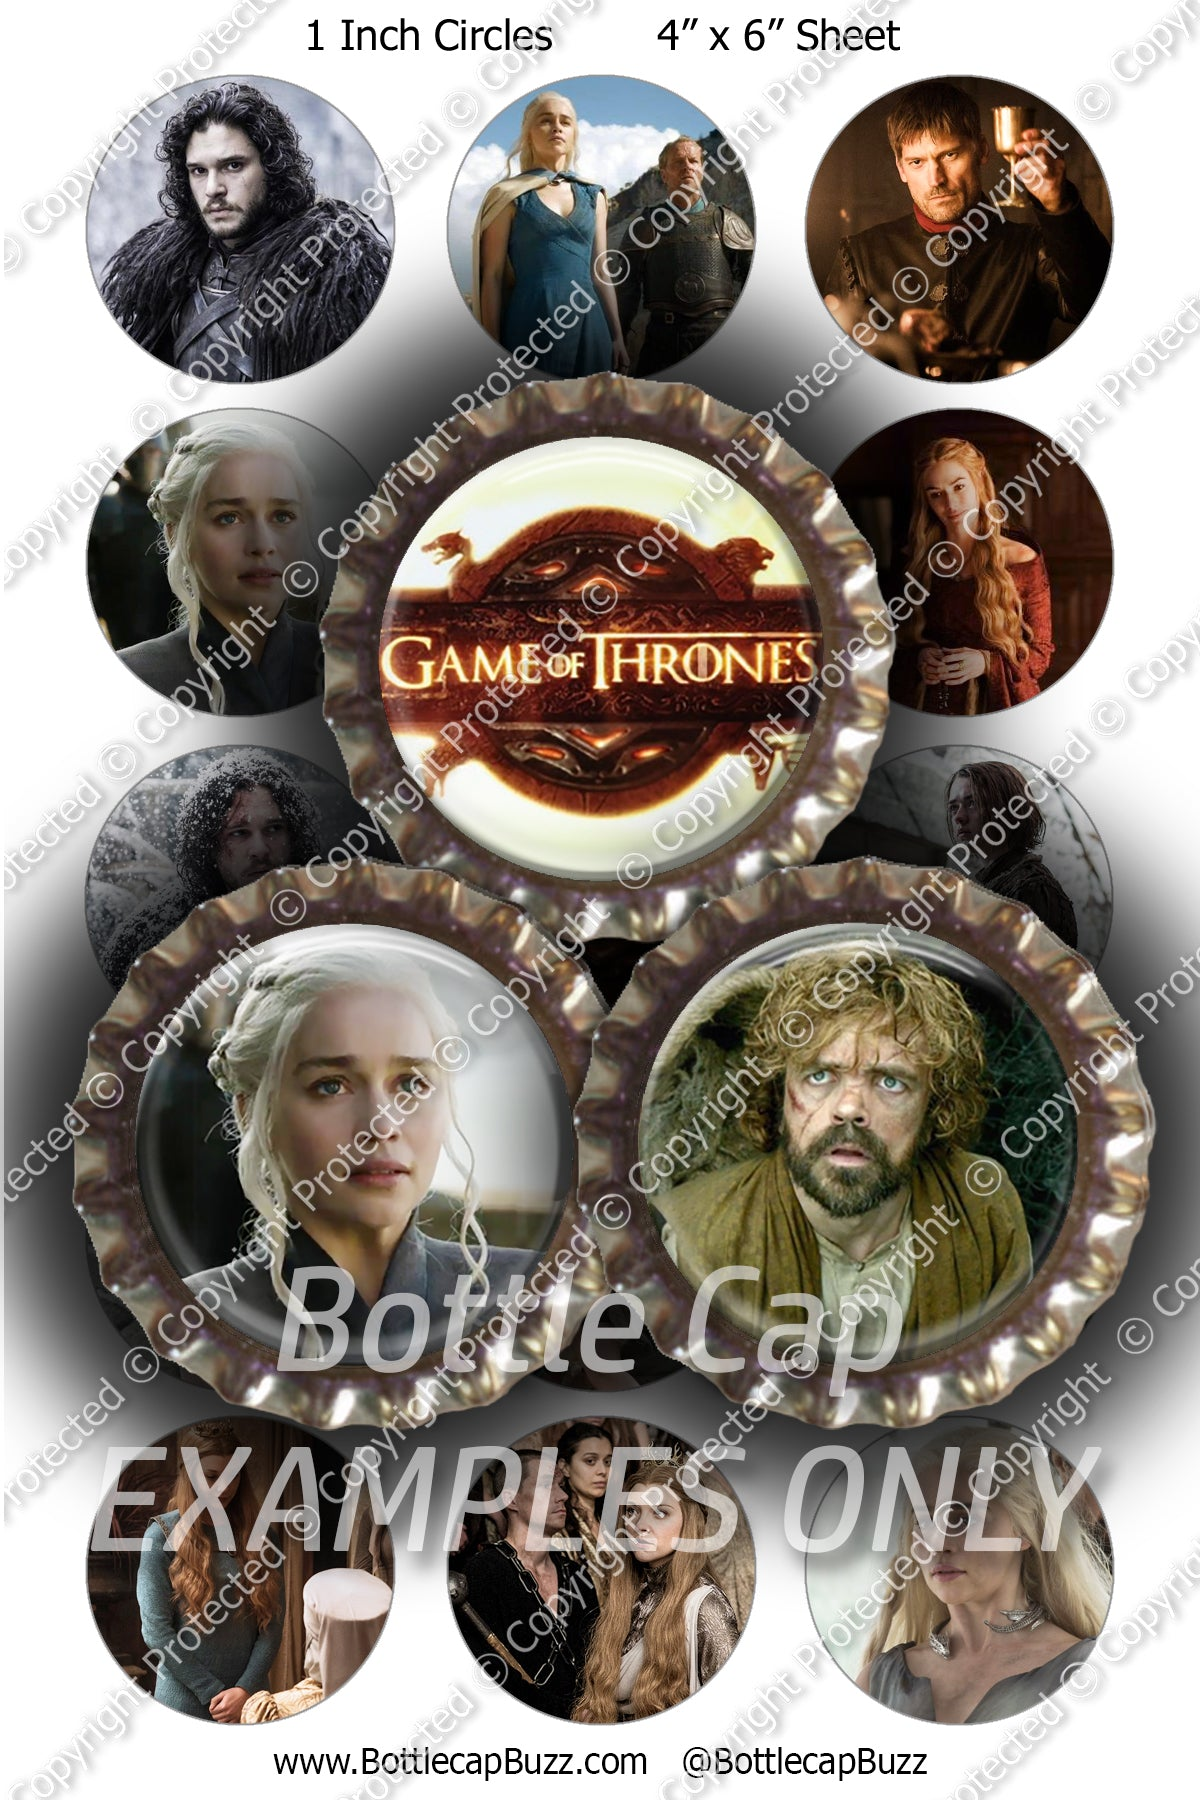 Digital Bottle Cap Images - Game of Thrones 2 Collage Sheet